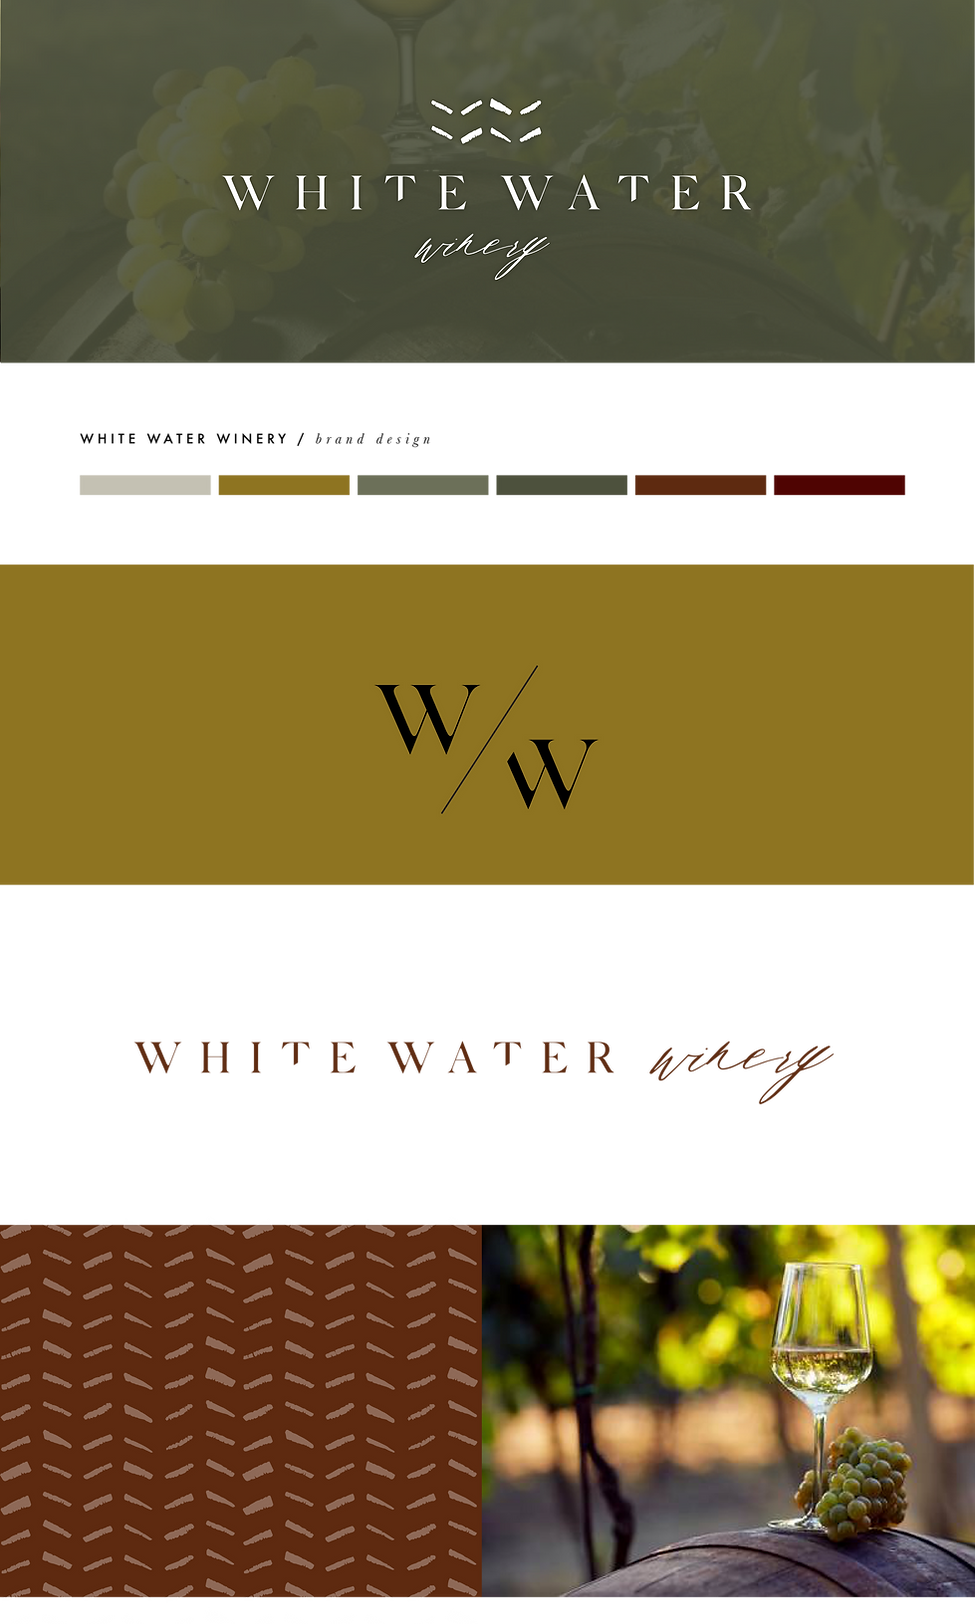 WHITEWATER-01.png